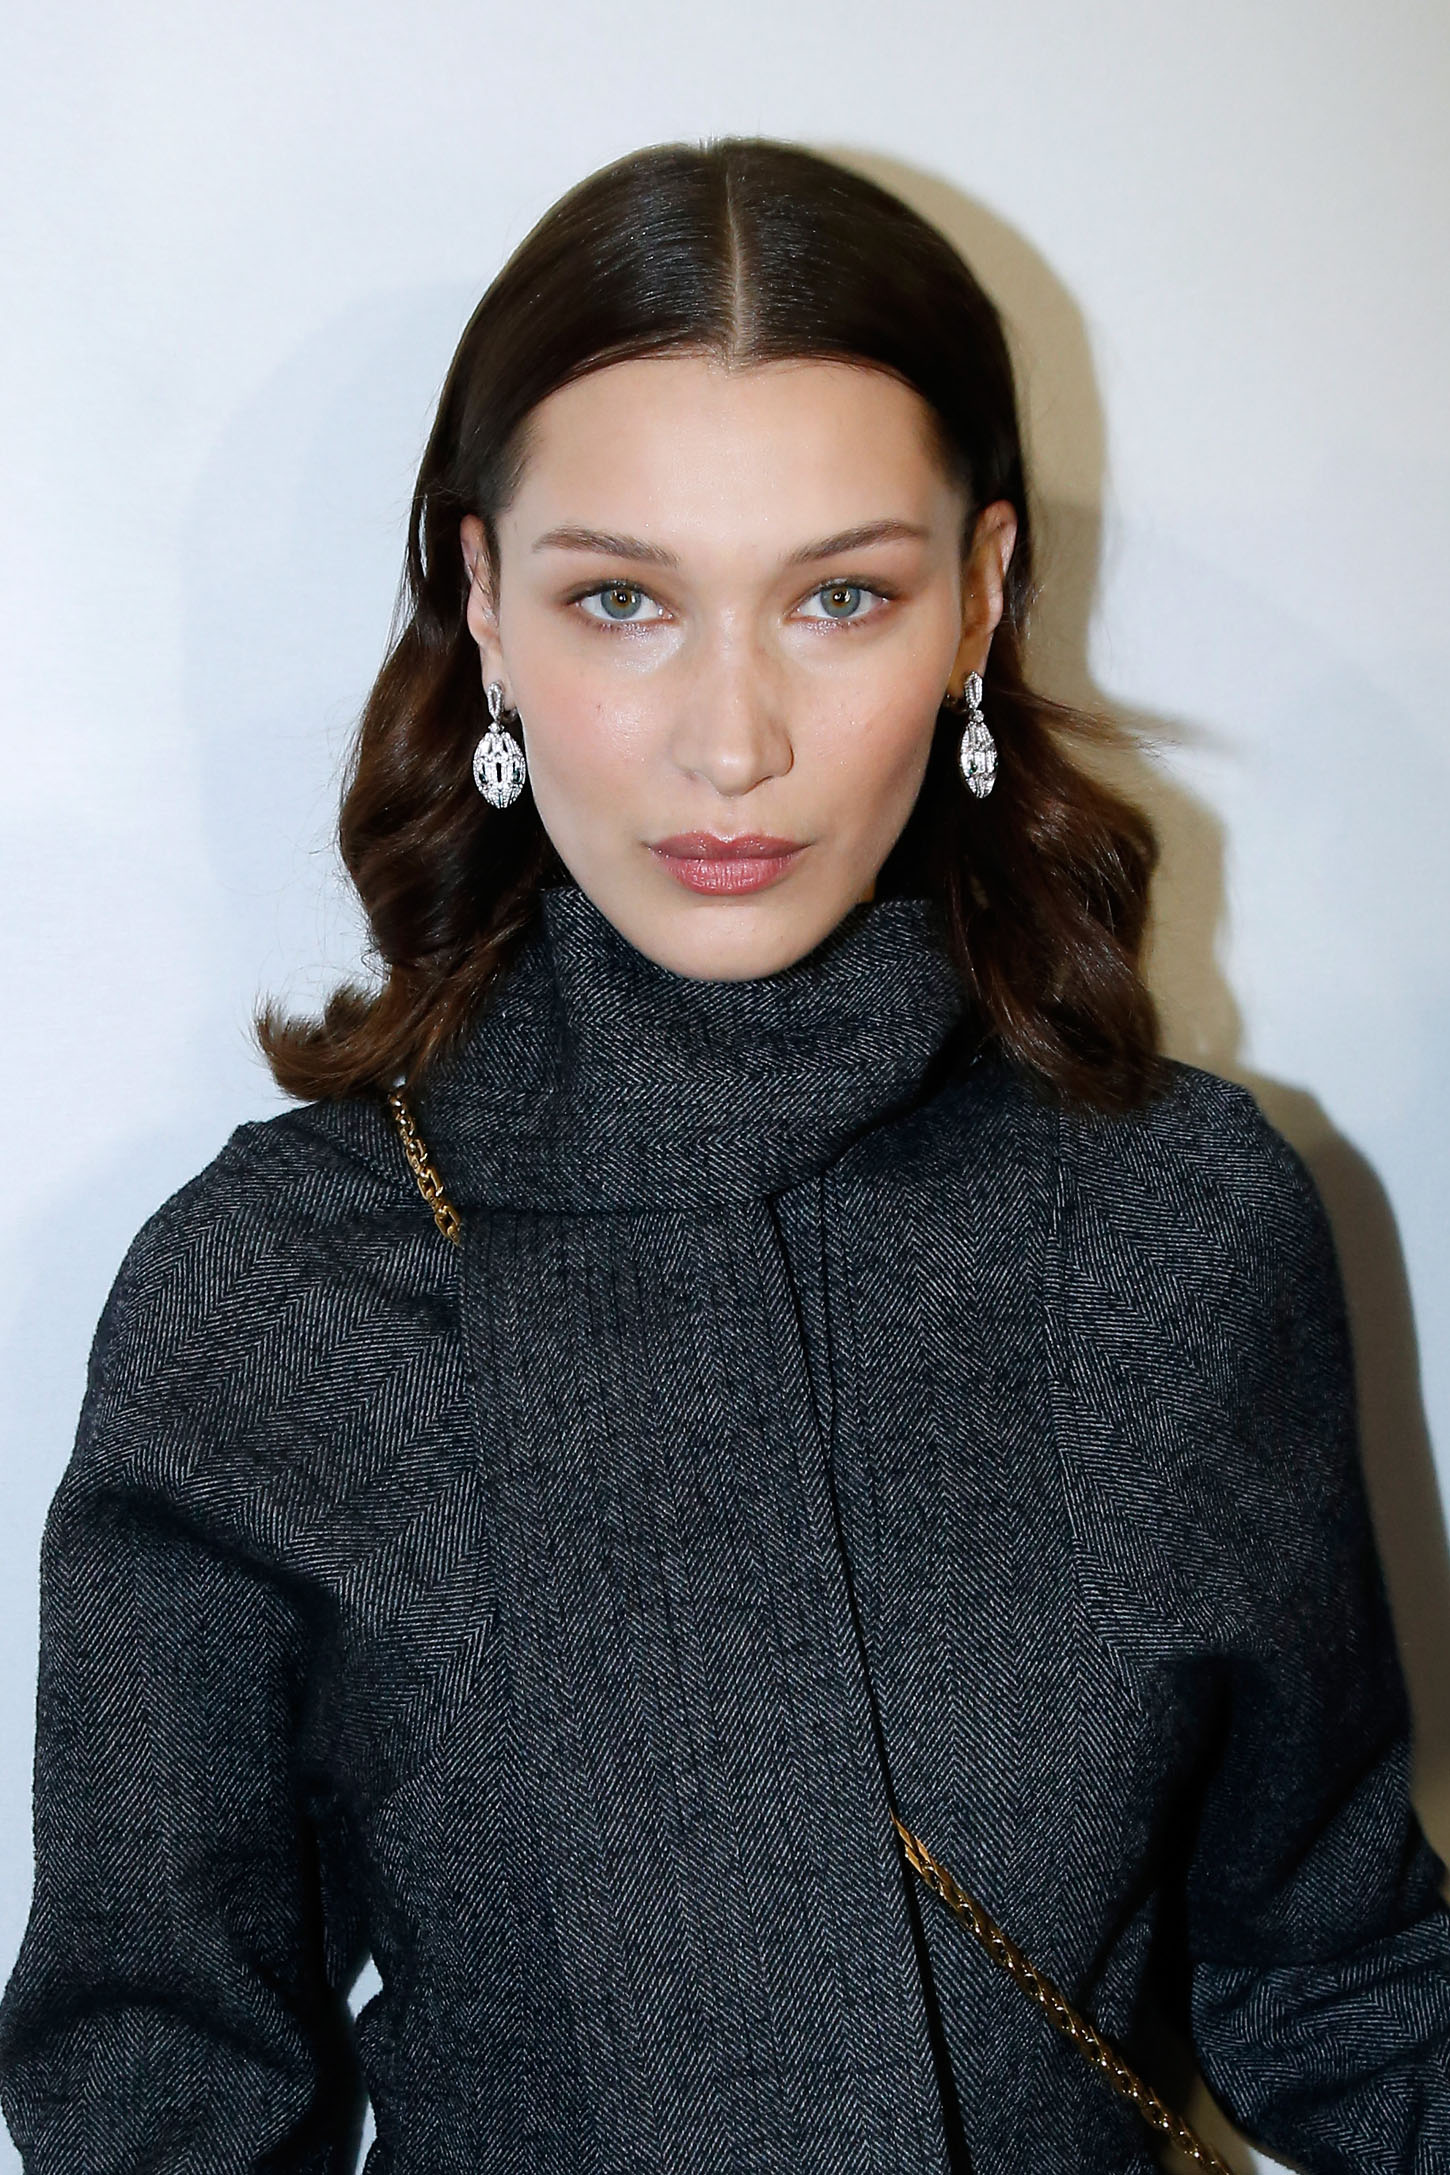 PARIS, FRANCE - MARCH 01:  Model Bella Hadid, wearing Bulgari Jewelry, attends the LVMH Prize 2018 - Designers Presentation on March 1, 2018 in Paris, France.  (Photo by Bertrand Rindoff Petroff/Getty Images)